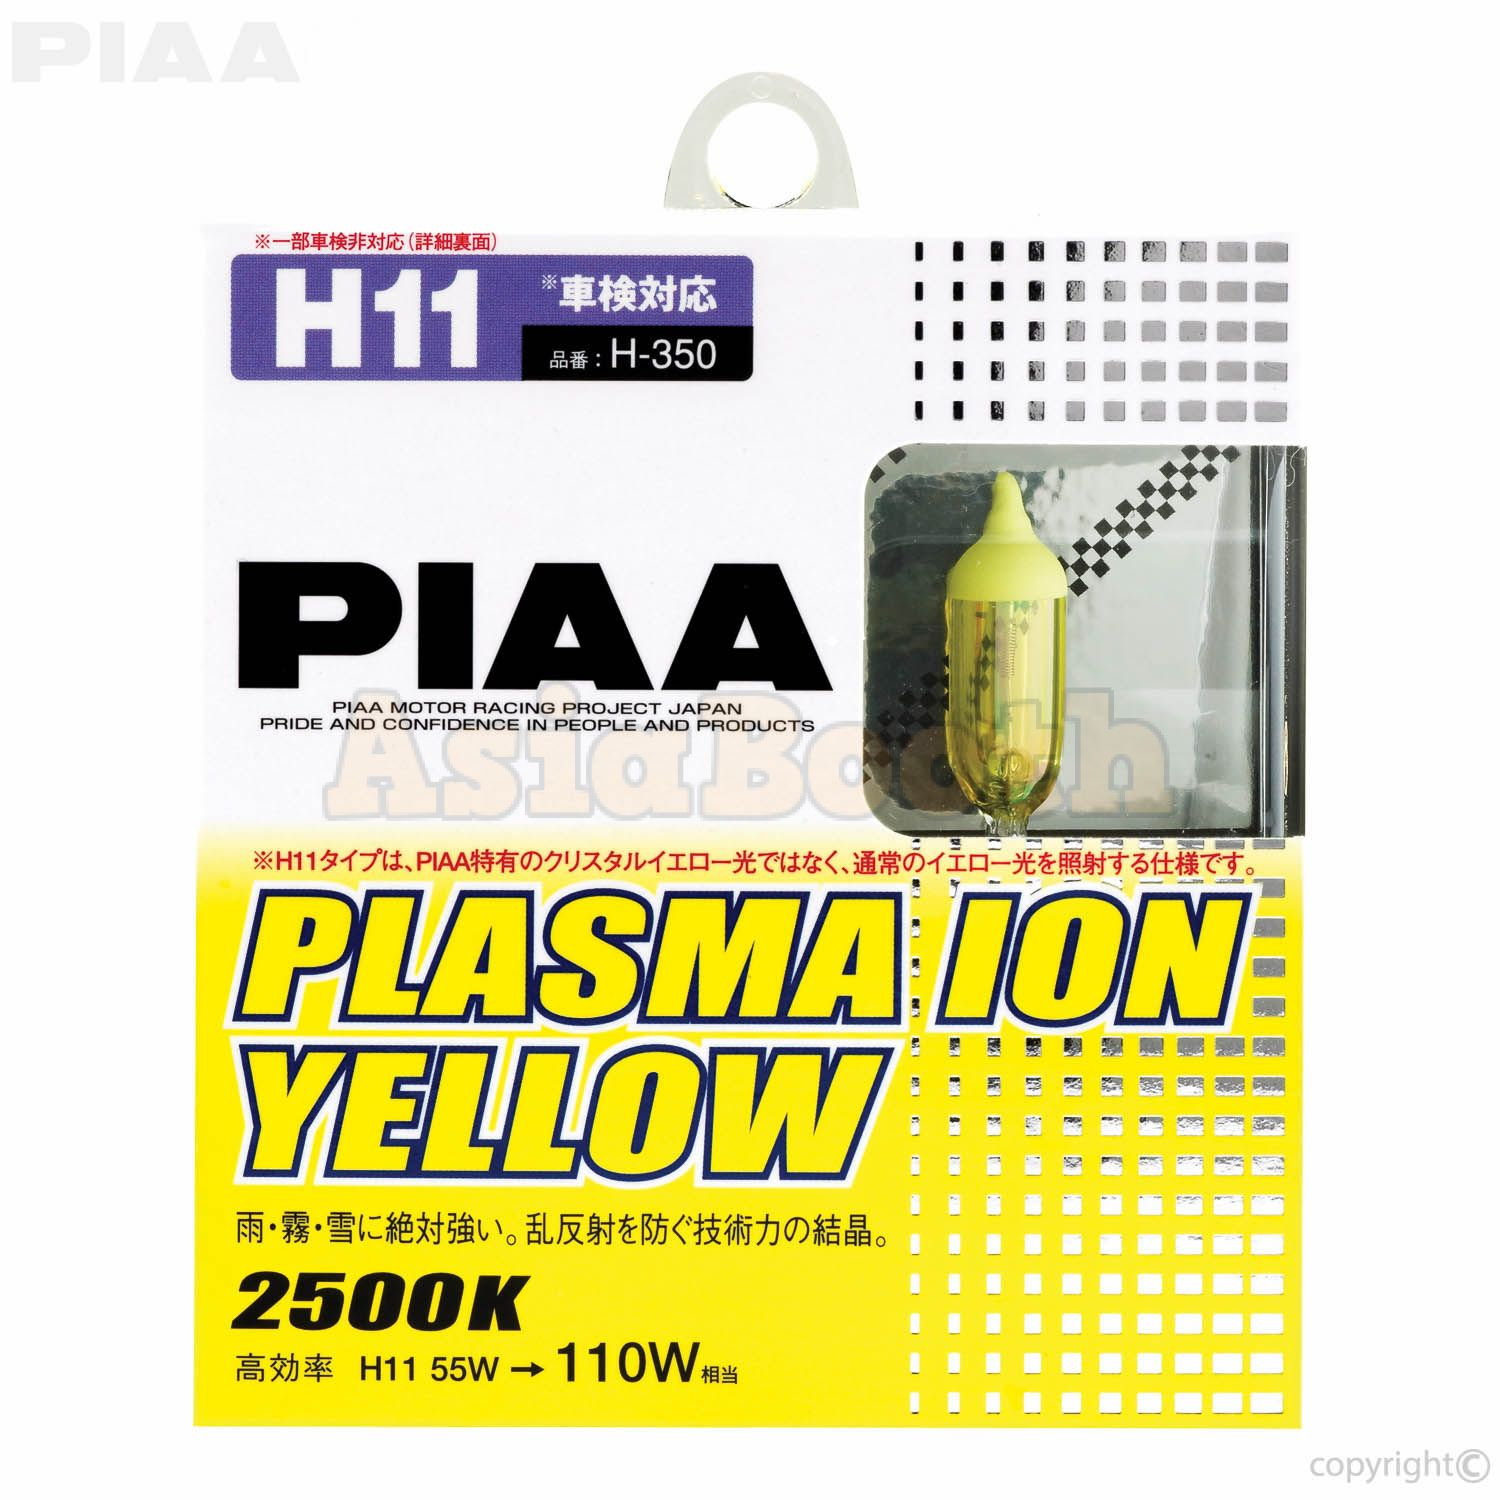 Piaa Wiring Harness 55 Watt Electrical Diagram Halogen 2500k Plasma Ion Yellow 110watt Asia Booth Metra